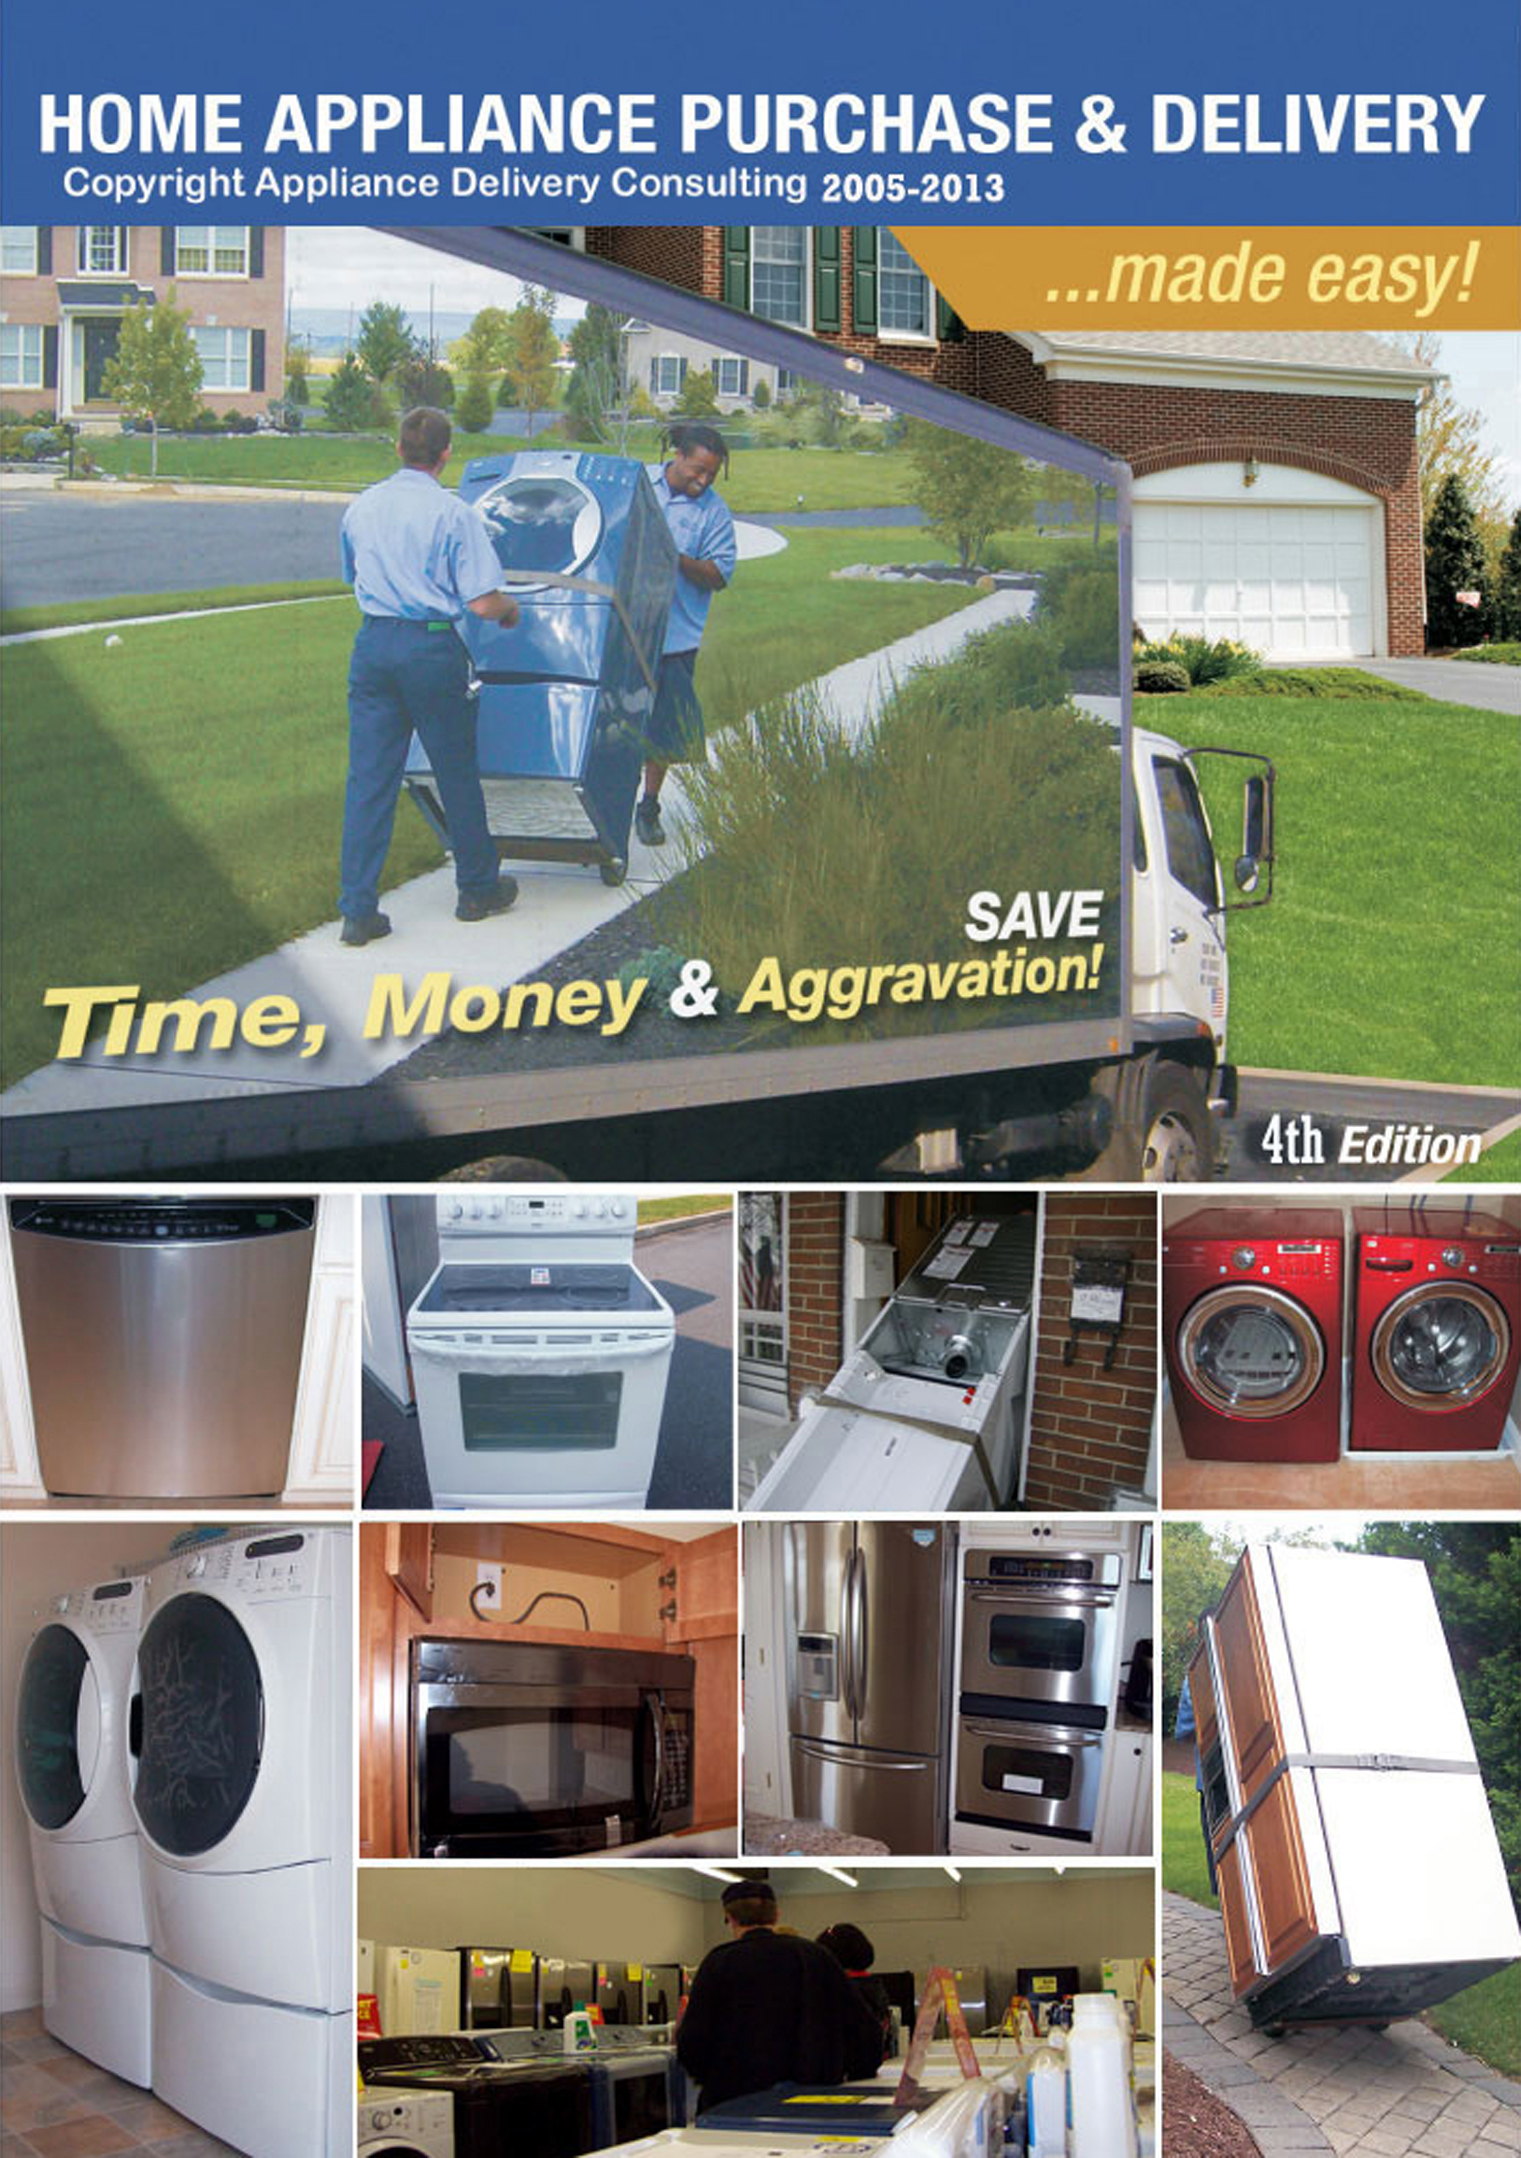 Home Appliance Purchase and Delivery ...  Made Easy!: 4th Edition